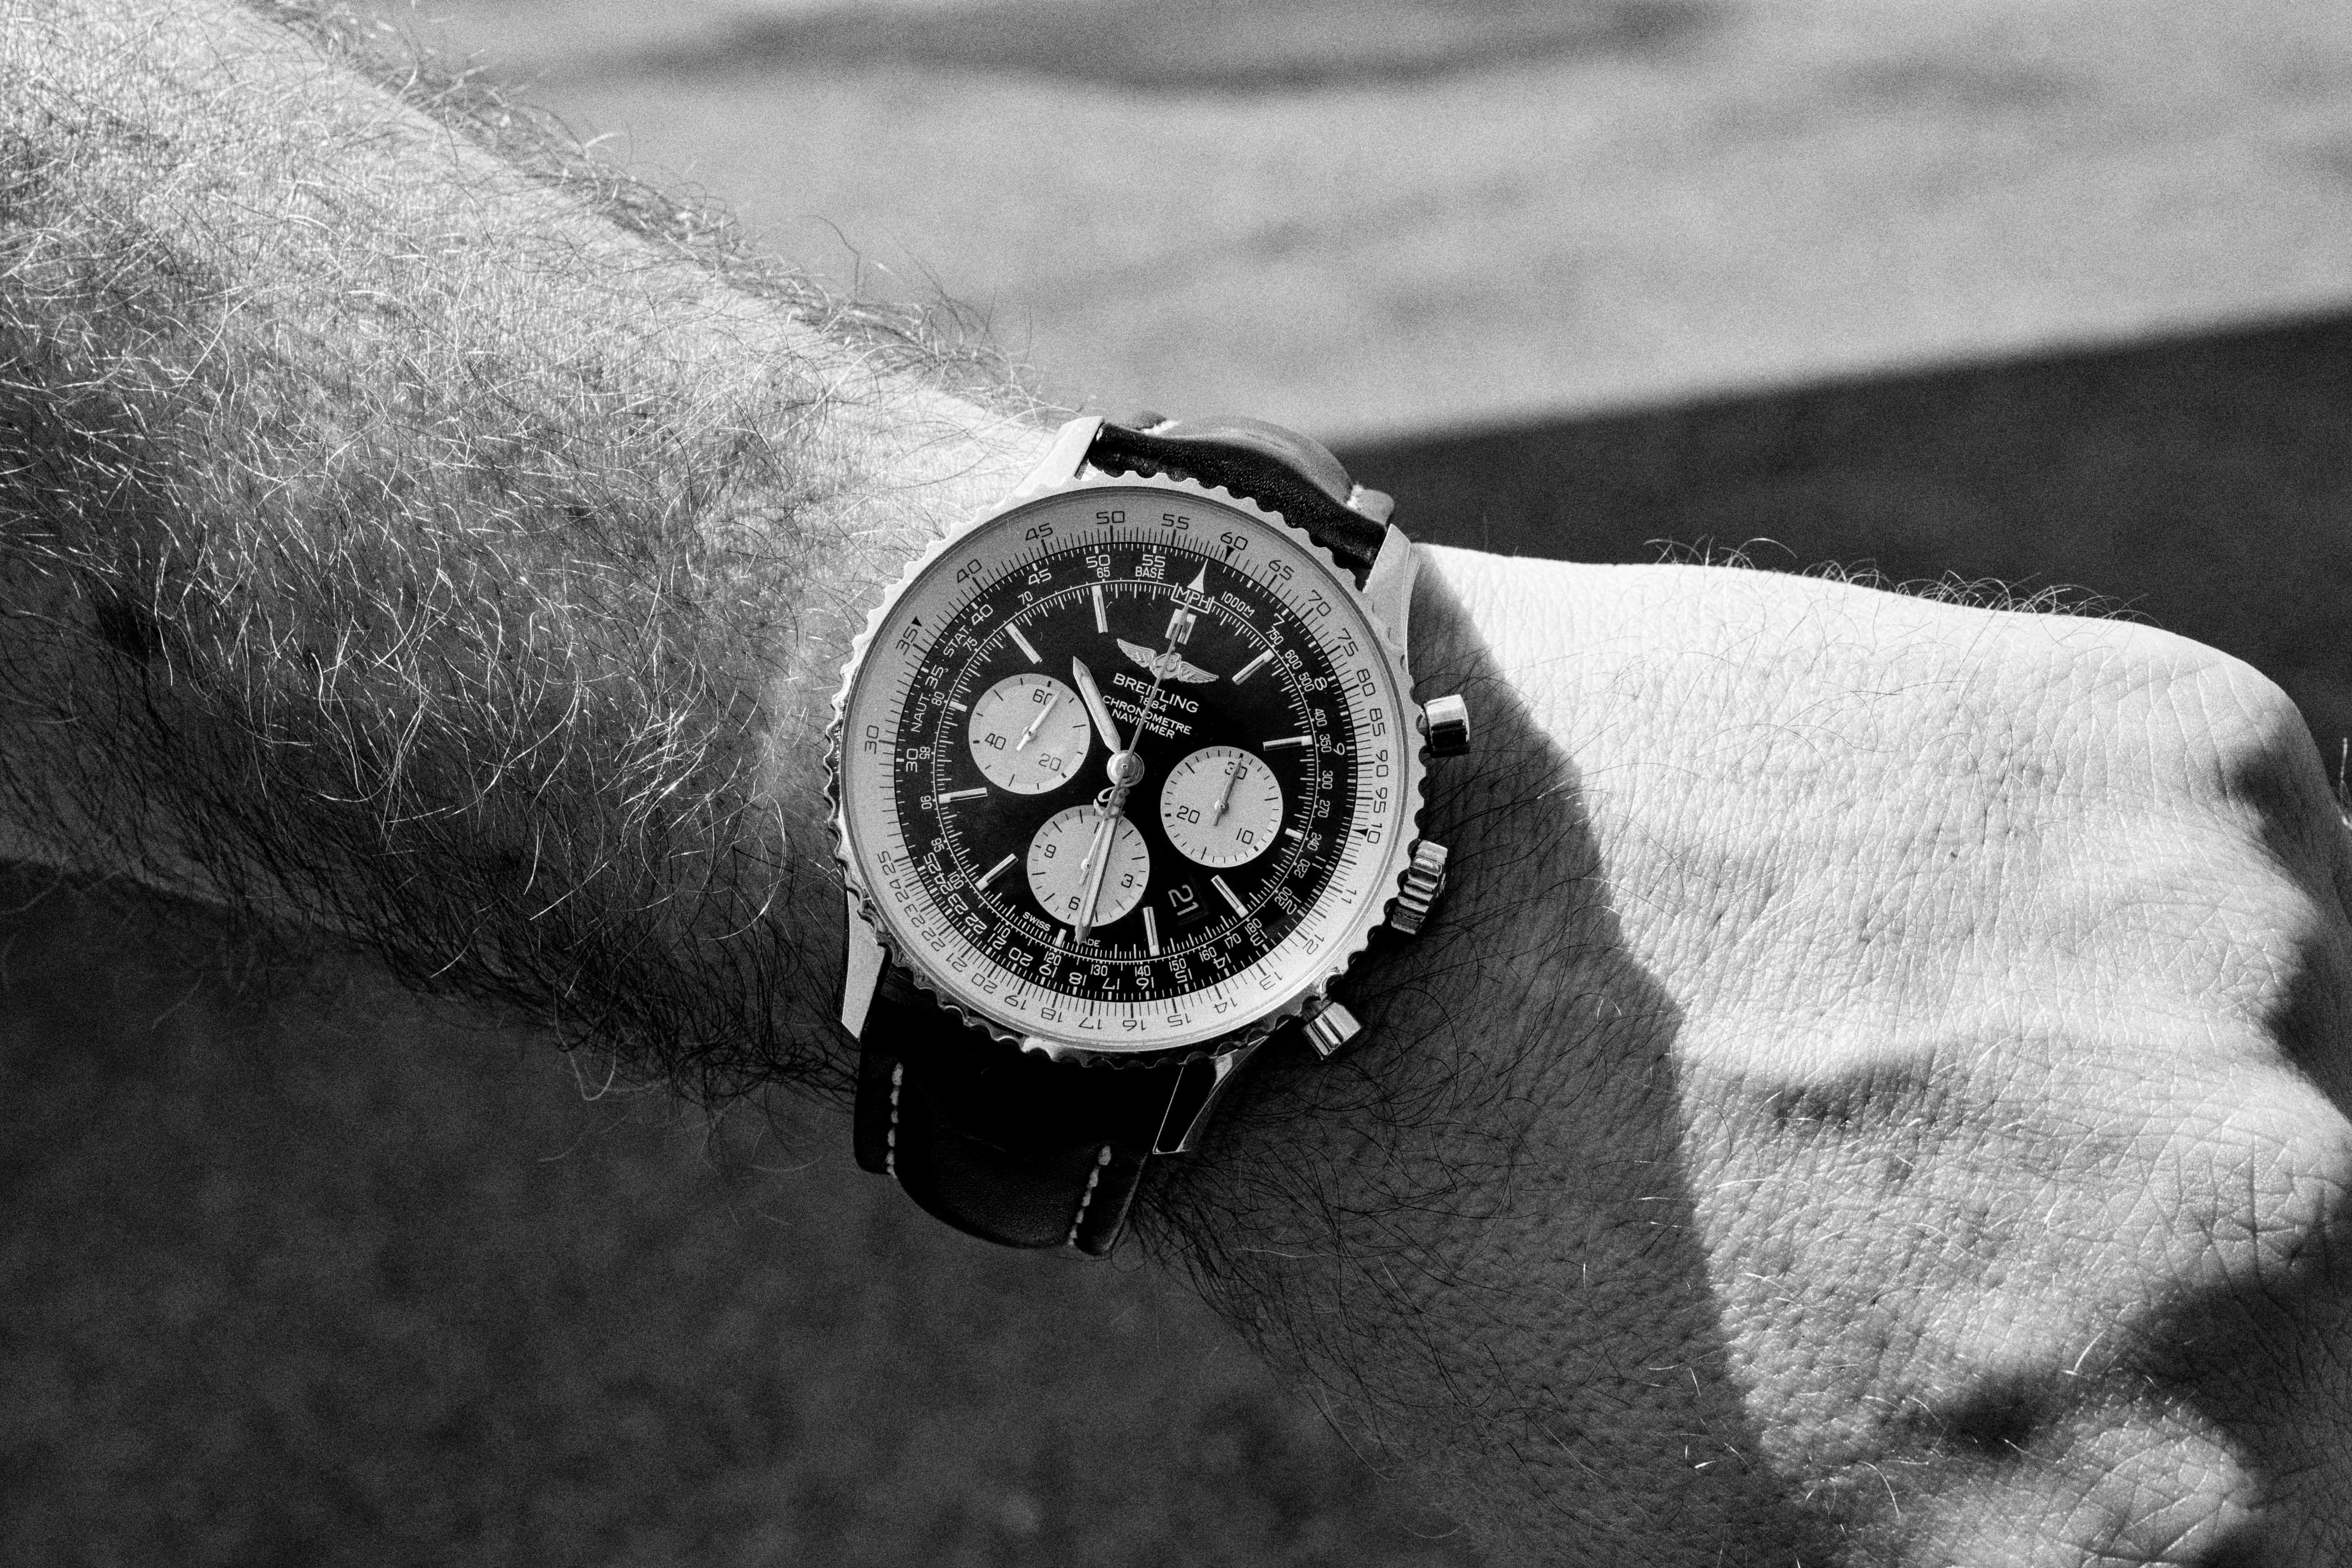 Navitimer 01 on the wrist of Captain Francisco Agullo, pilot of the Breitling DC-3. Dispatches: Breitling's DC-3 To Become Oldest Aircraft Ever To Circle The Earth Dispatches: Breitling's DC-3 To Become Oldest Aircraft Ever To Circle The Earth P8212265 bw